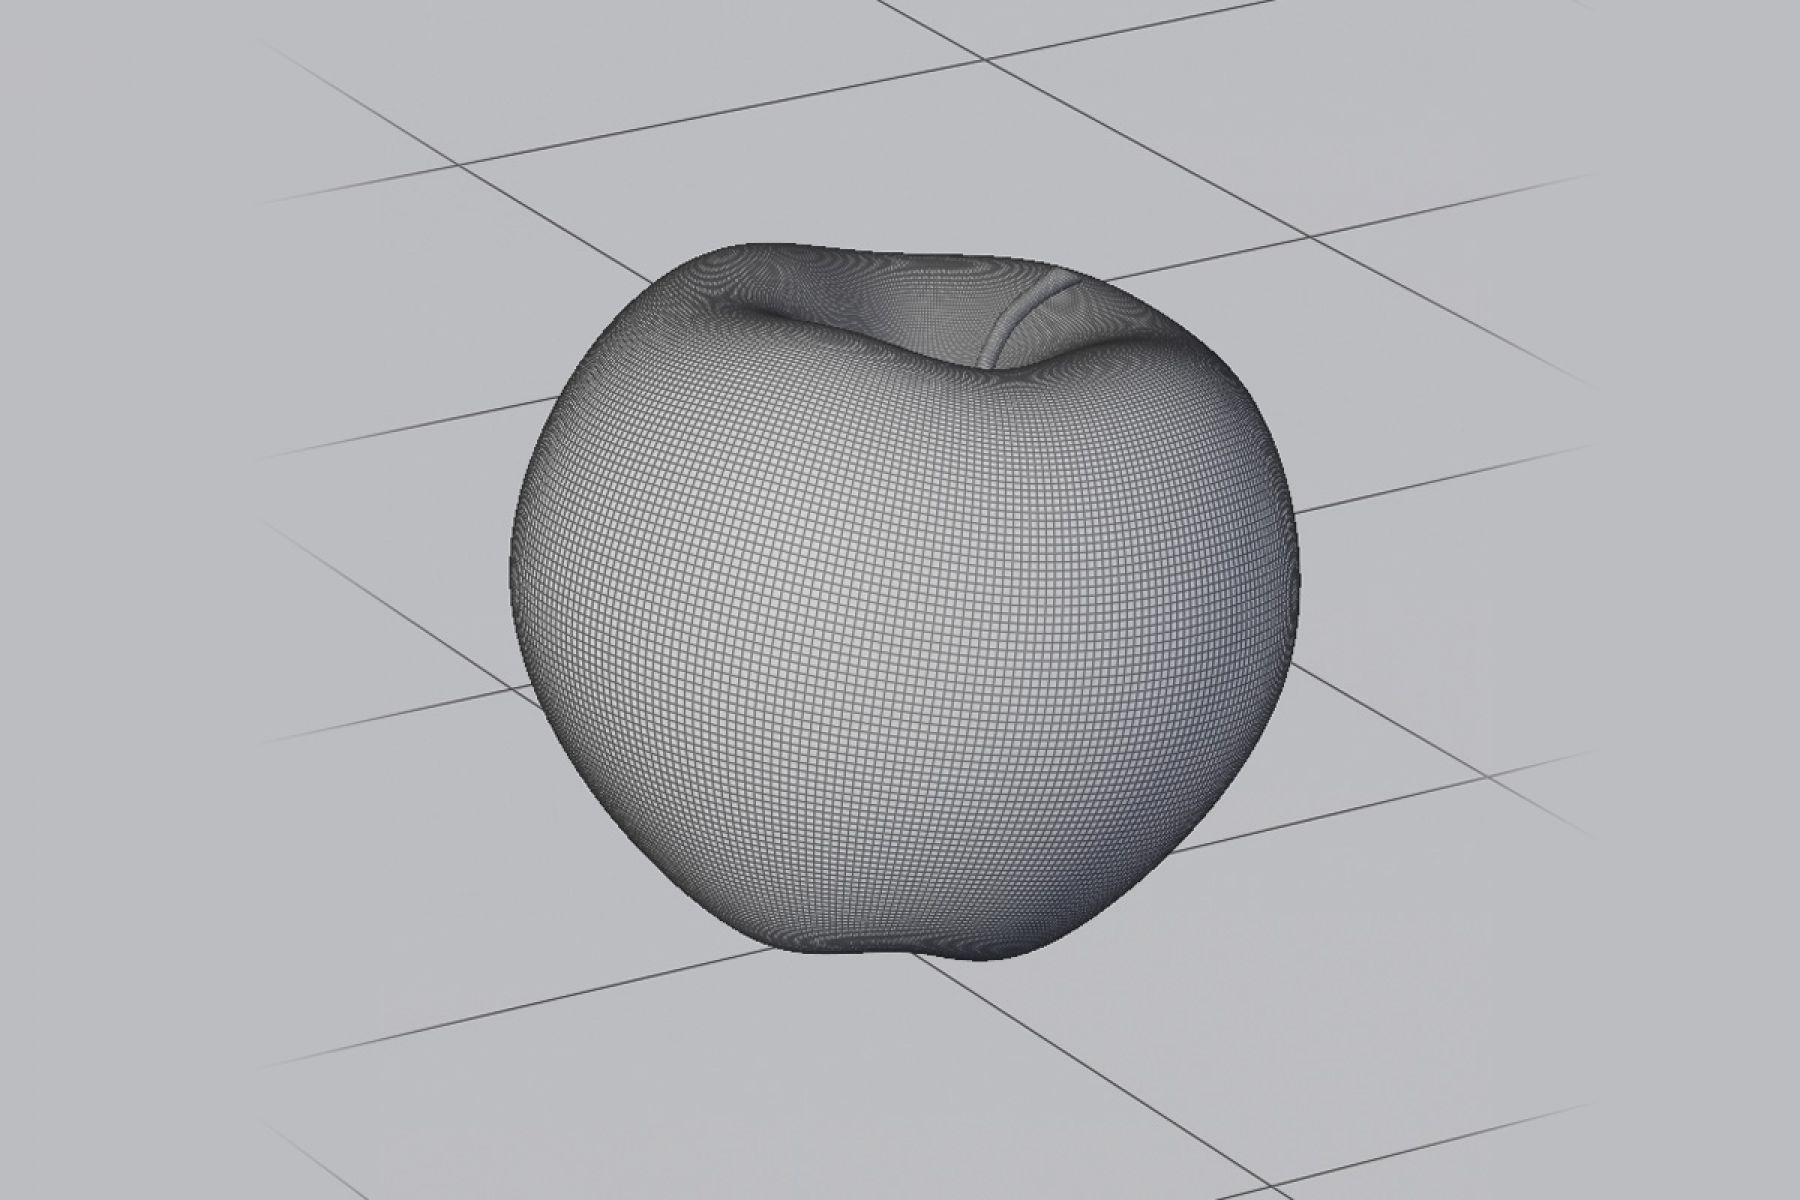 The apple in raw 3d wireframe